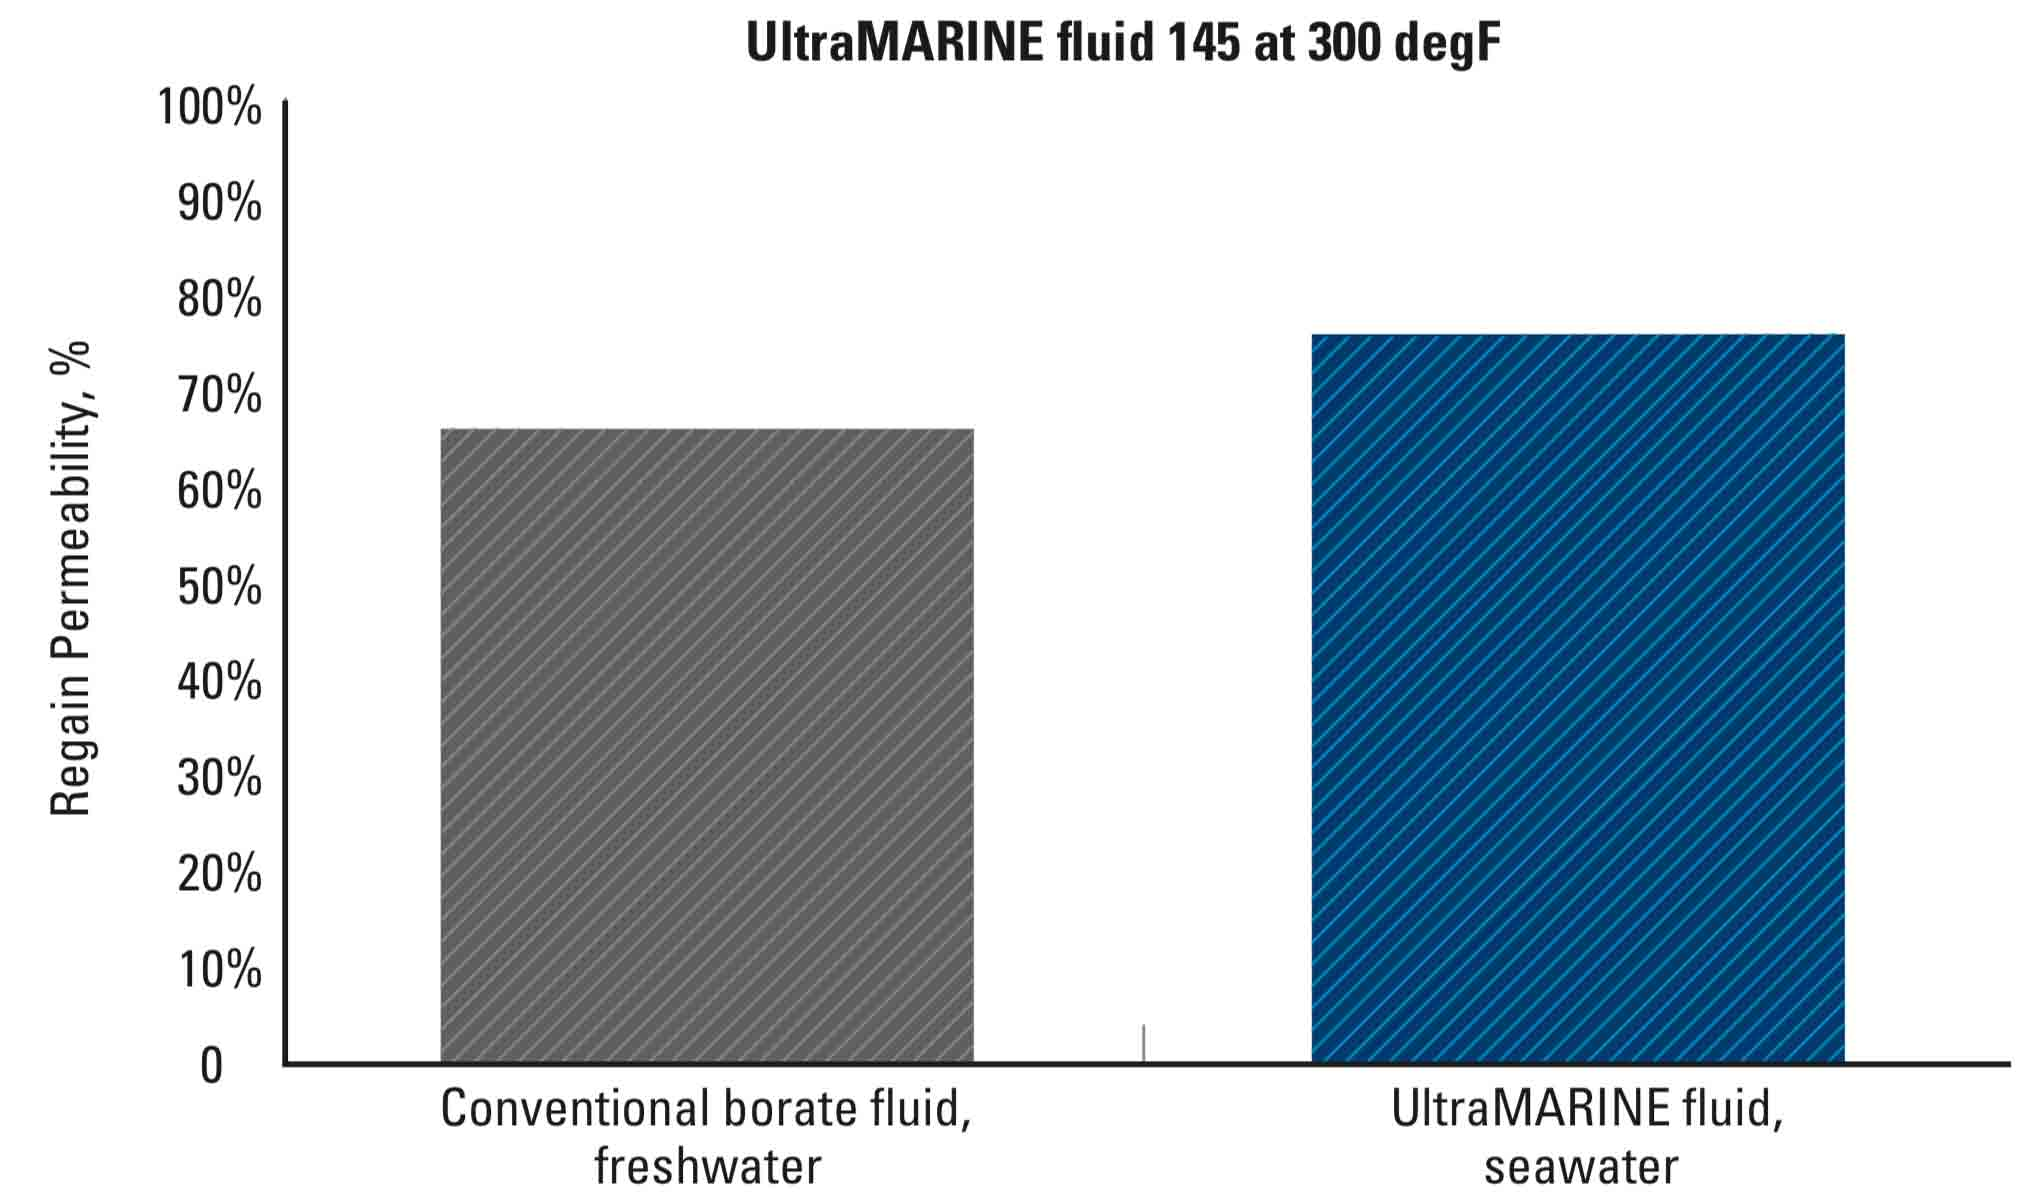 Regained proppant pack conductivity of UltraMARINE fluid with 45 lbm/1,000 galUS formulated in seawater, in comparison to conventional borate with 45 lbm/1,000 galUS formulated in freshwater.